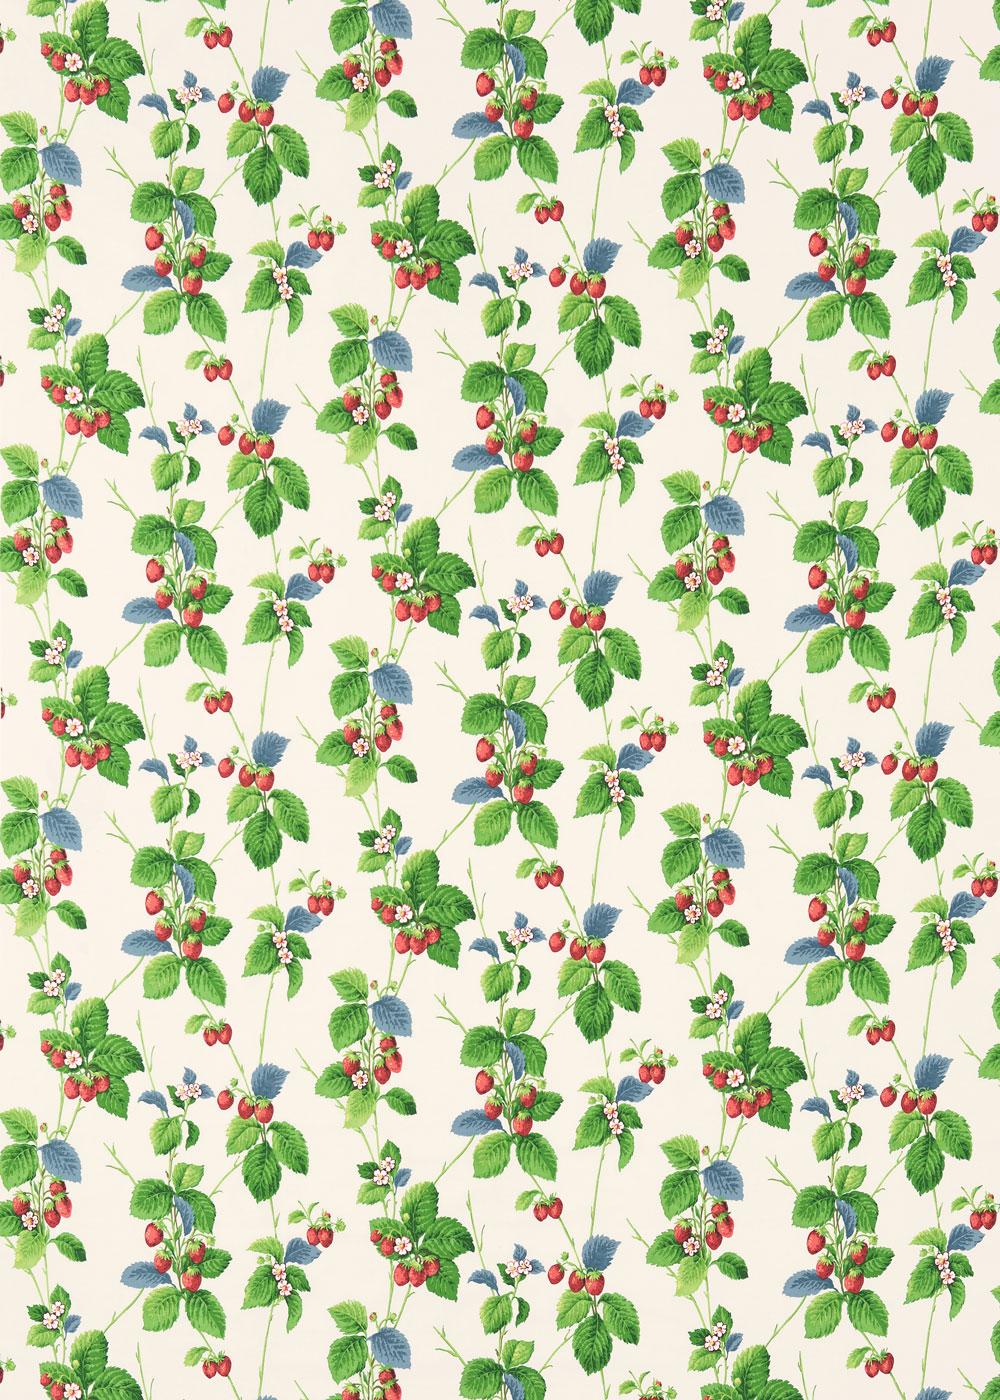 Summer Strawberries Fabric - Strawberry / Leaf - by Sanderson